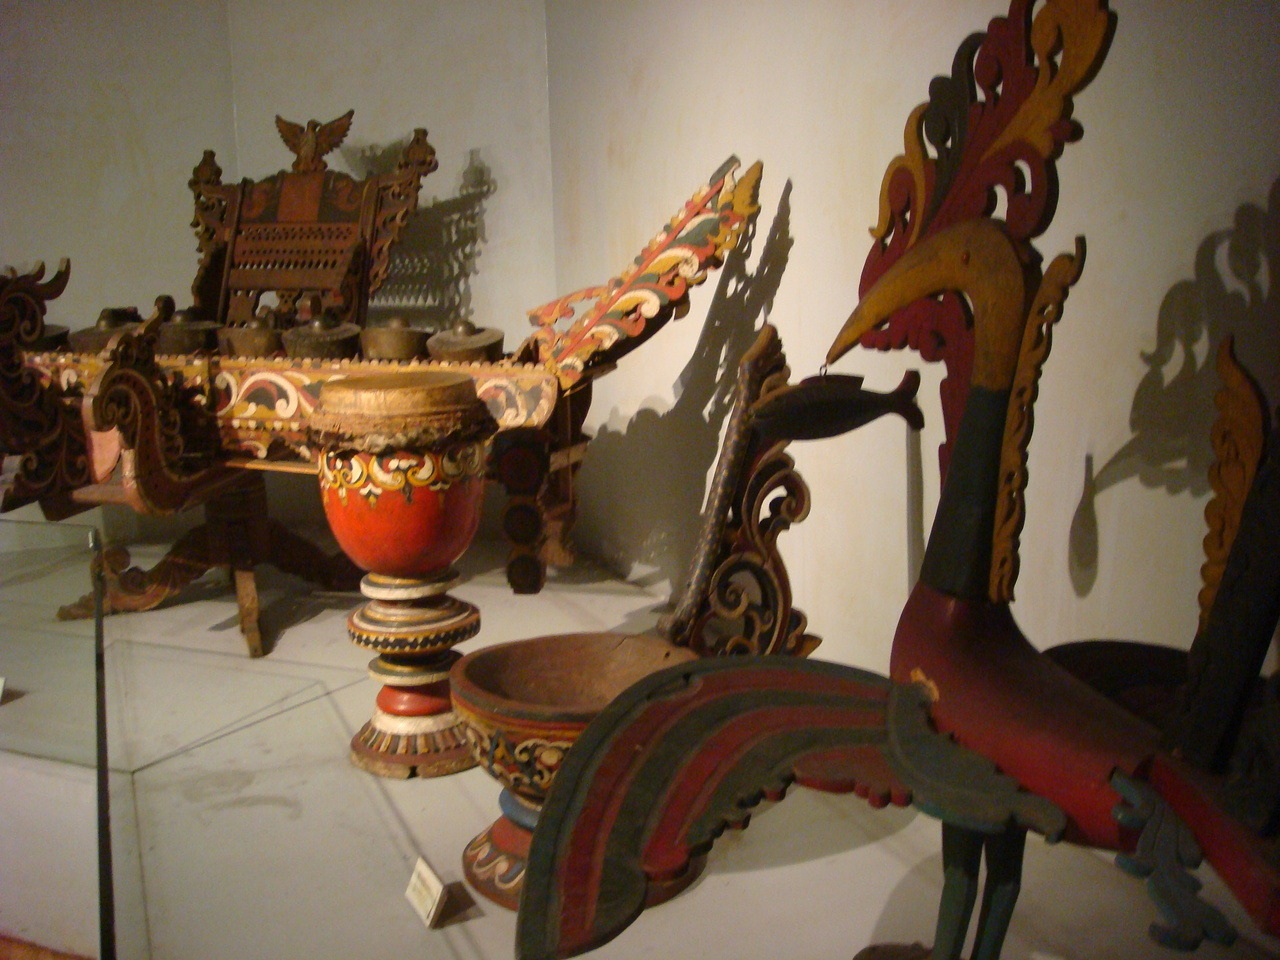 From a recent trip to the Pambansang Museo (National Museum). 09/19/2012